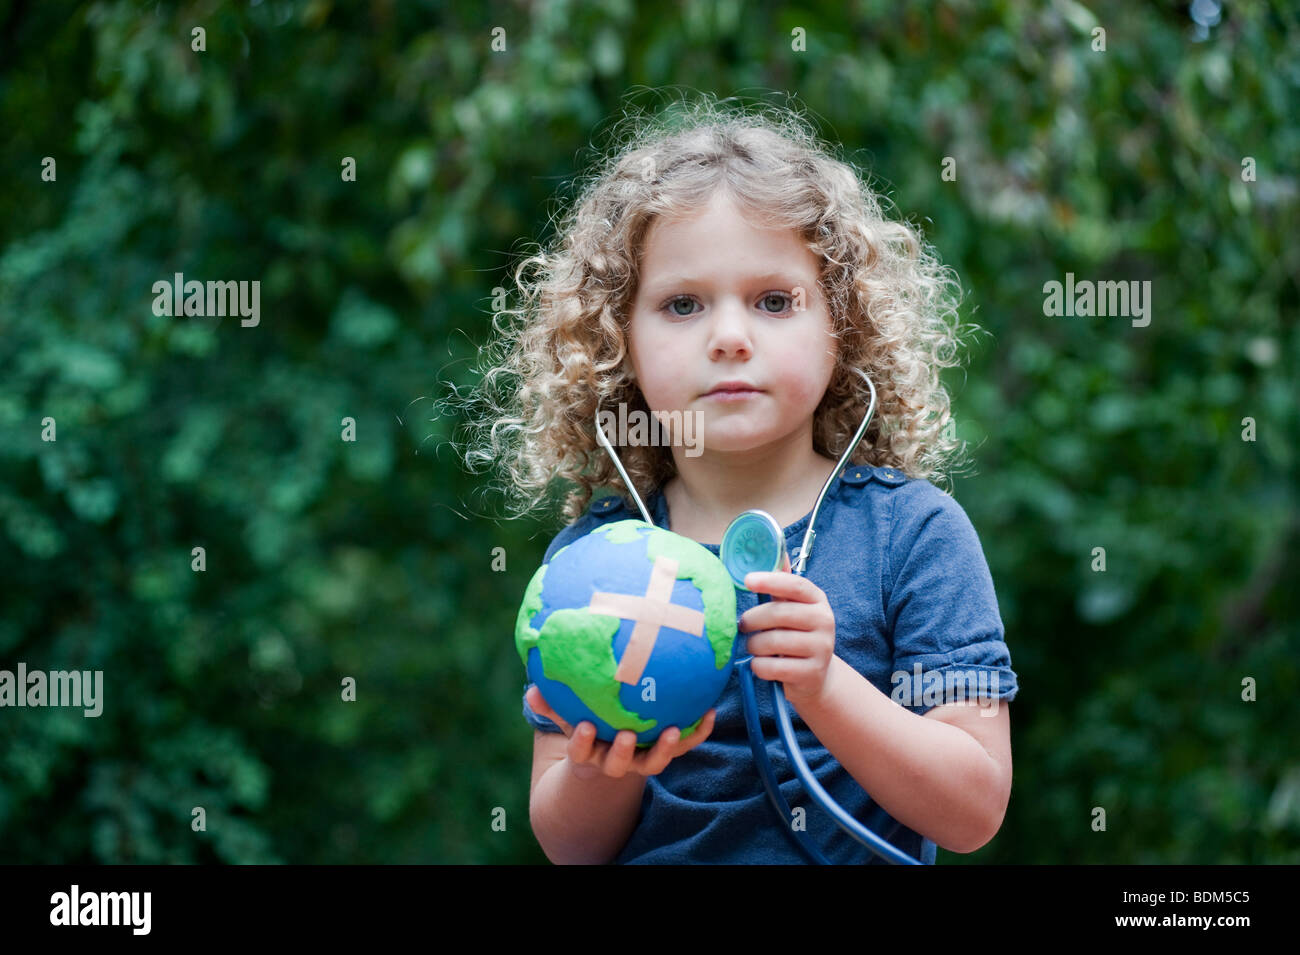 Young girl holding a model of a sick  planet Earth with a Band Aid attached and checking its health with a stethoscope - Stock Image